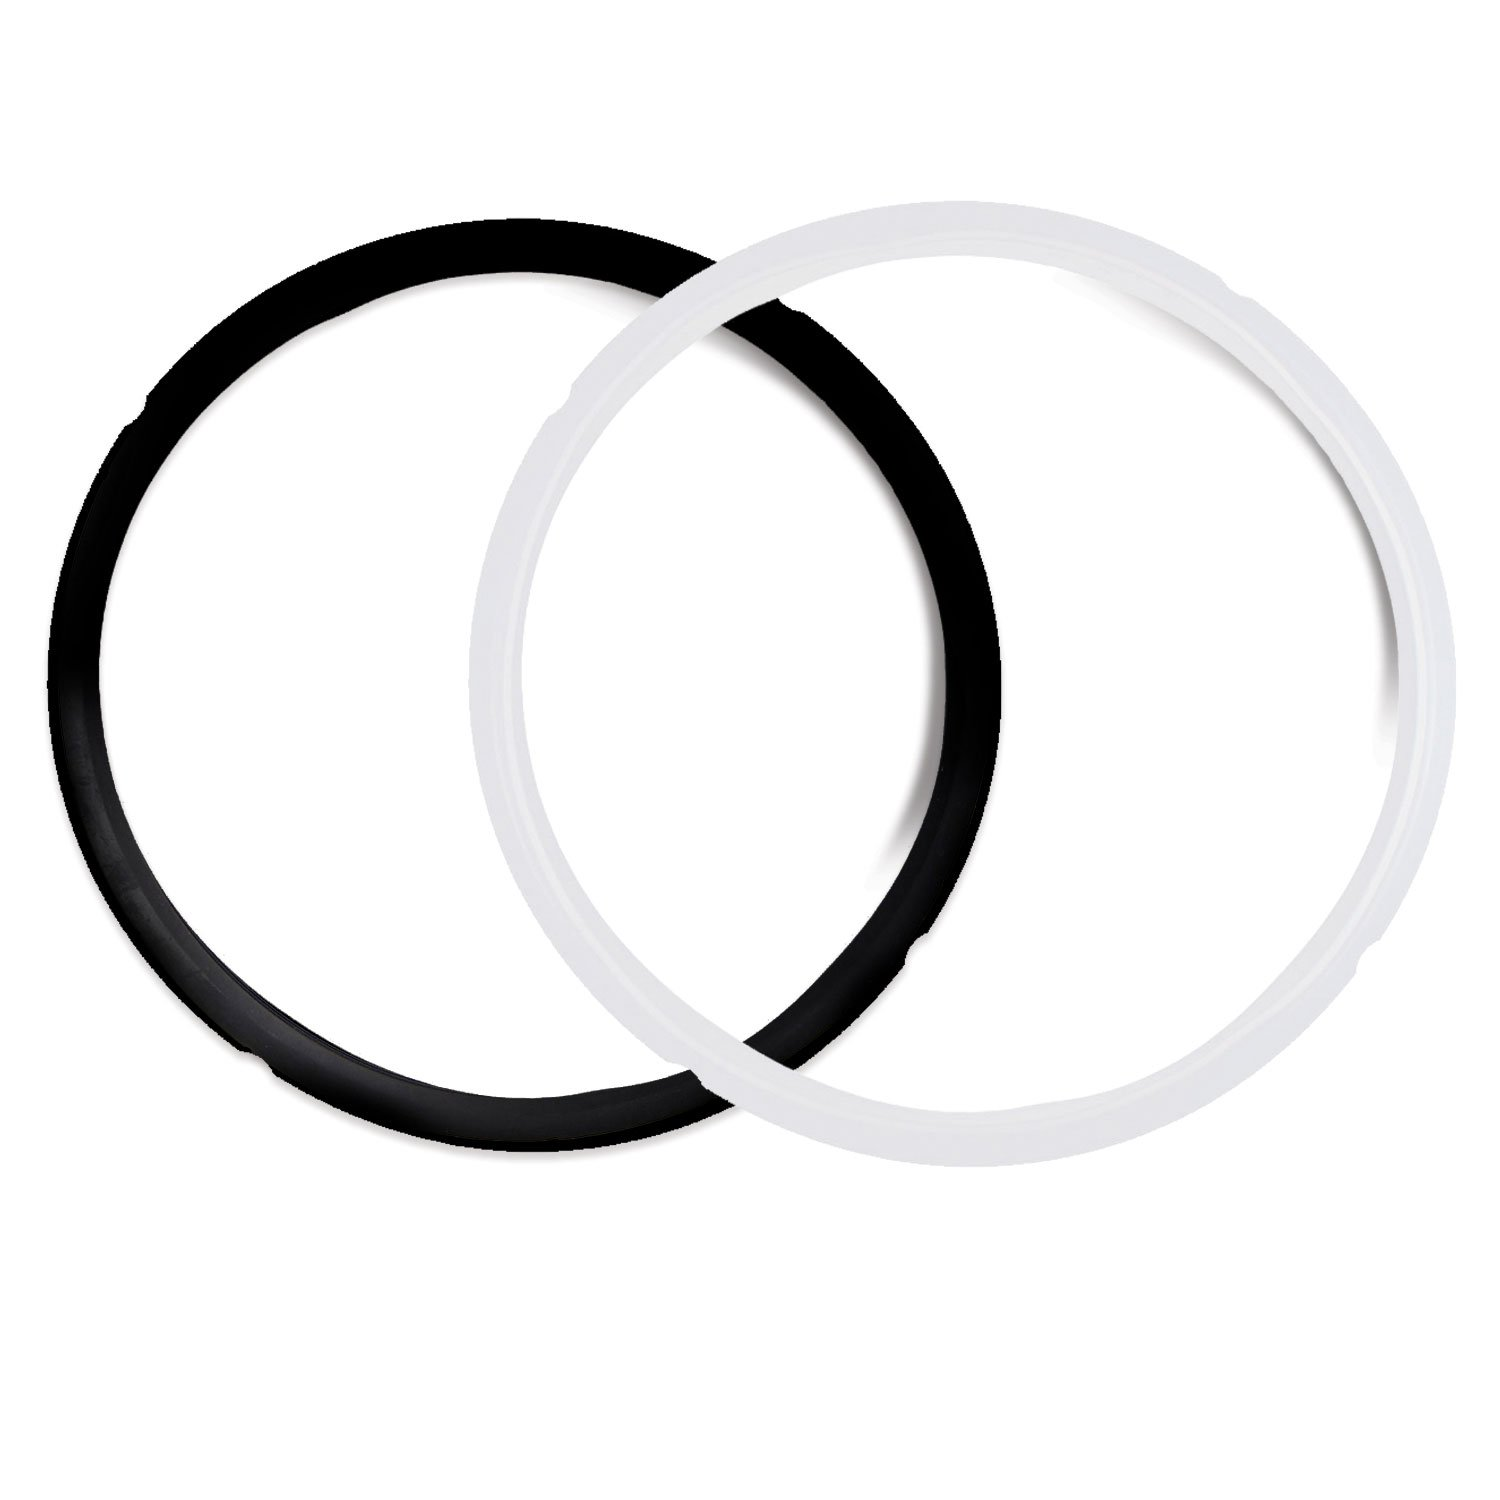 Pack of 2 Instant Pot Silicone Sealing Ring - Fits IP-DUO60, IP-LUX60, IP-DUO50, IP-LUX50, Smart-60, IP-CSG60 and IP-CSG50 Housewares Solutions